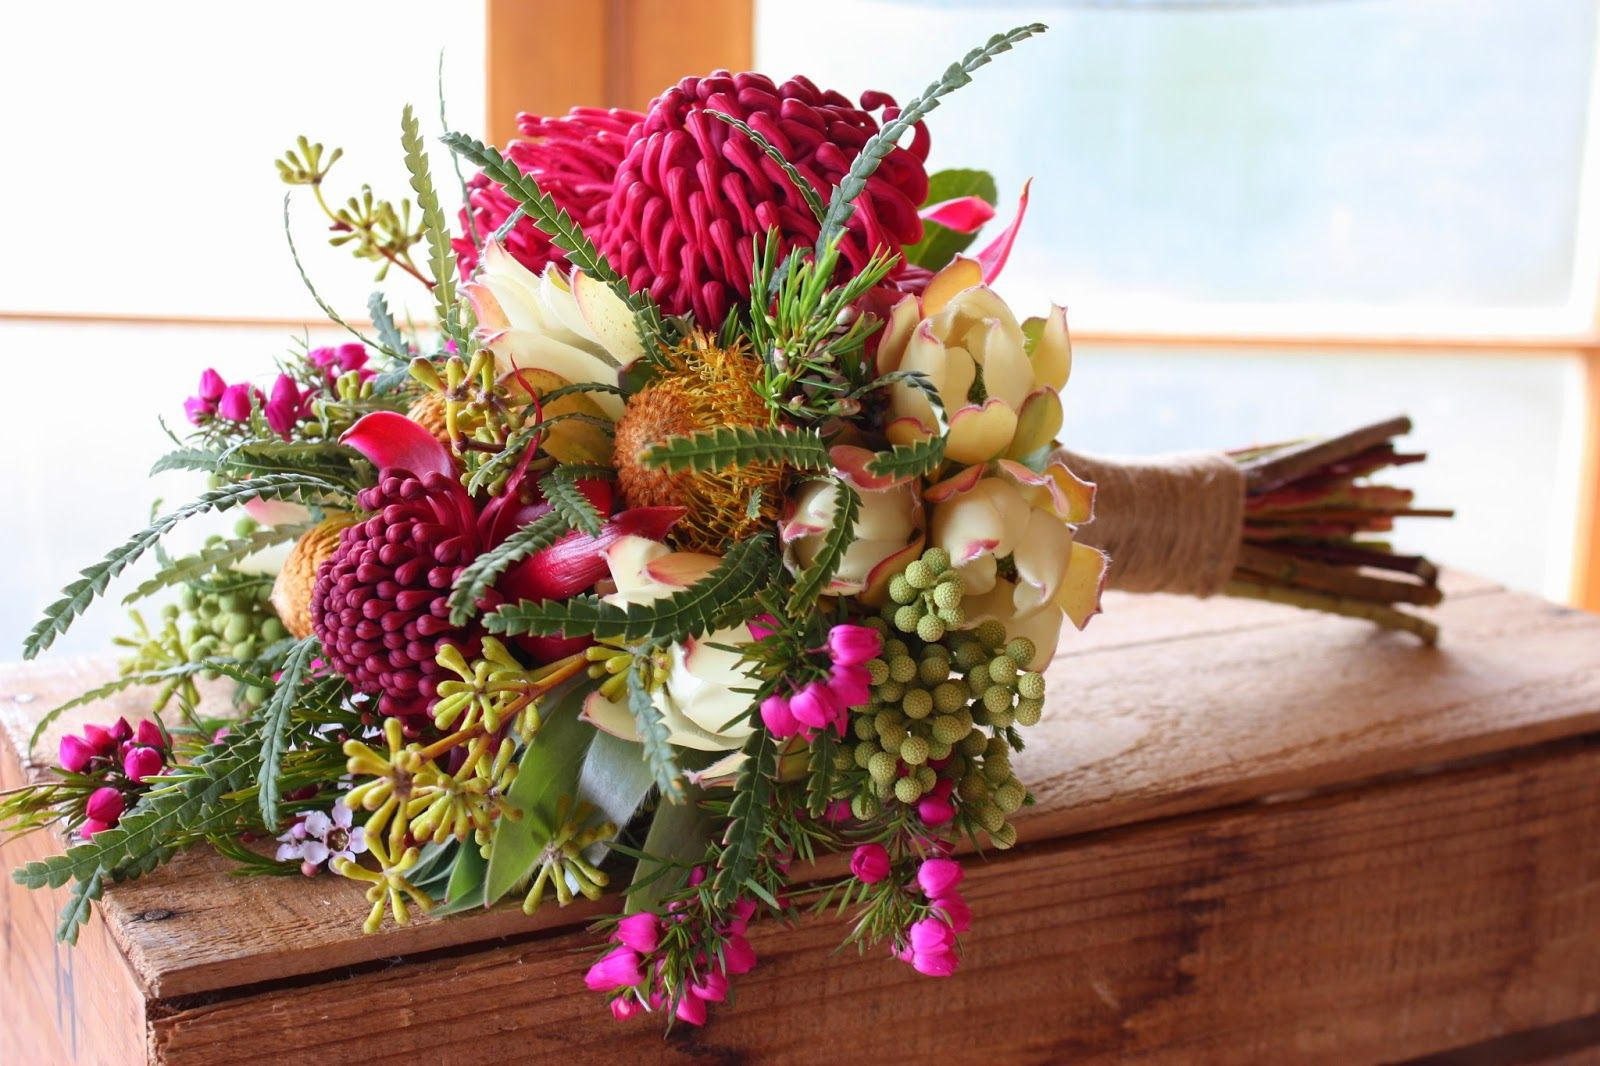 Native spring wedding flowers waratah dryandra berzelia boronia native spring wedding flowers waratah dryandra berzelia boronia leucadendron mightylinksfo